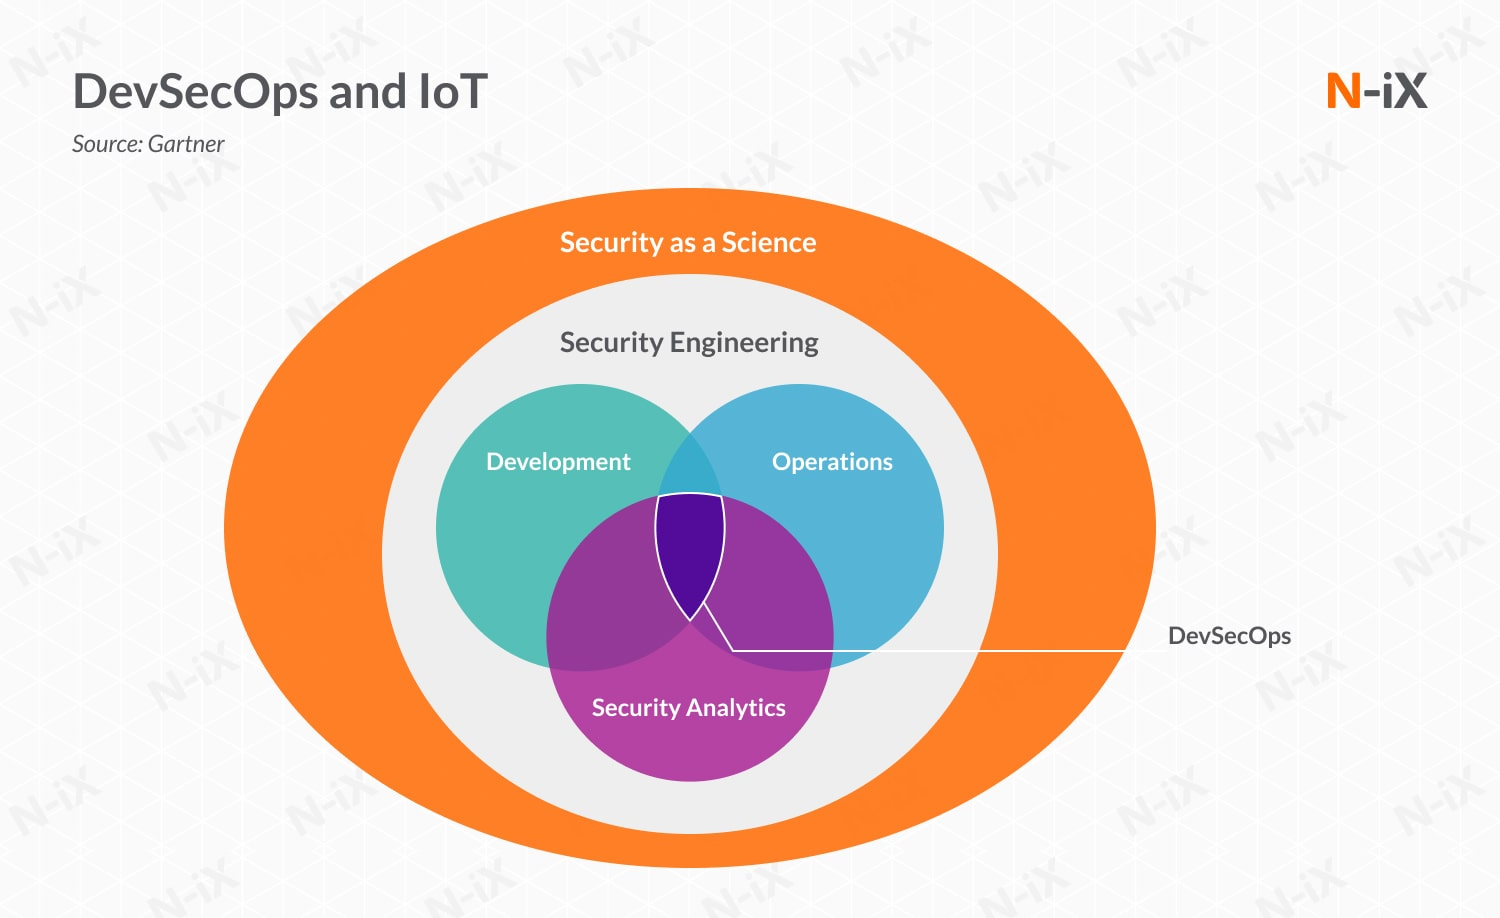 IoT and cloud security: DevSecOps